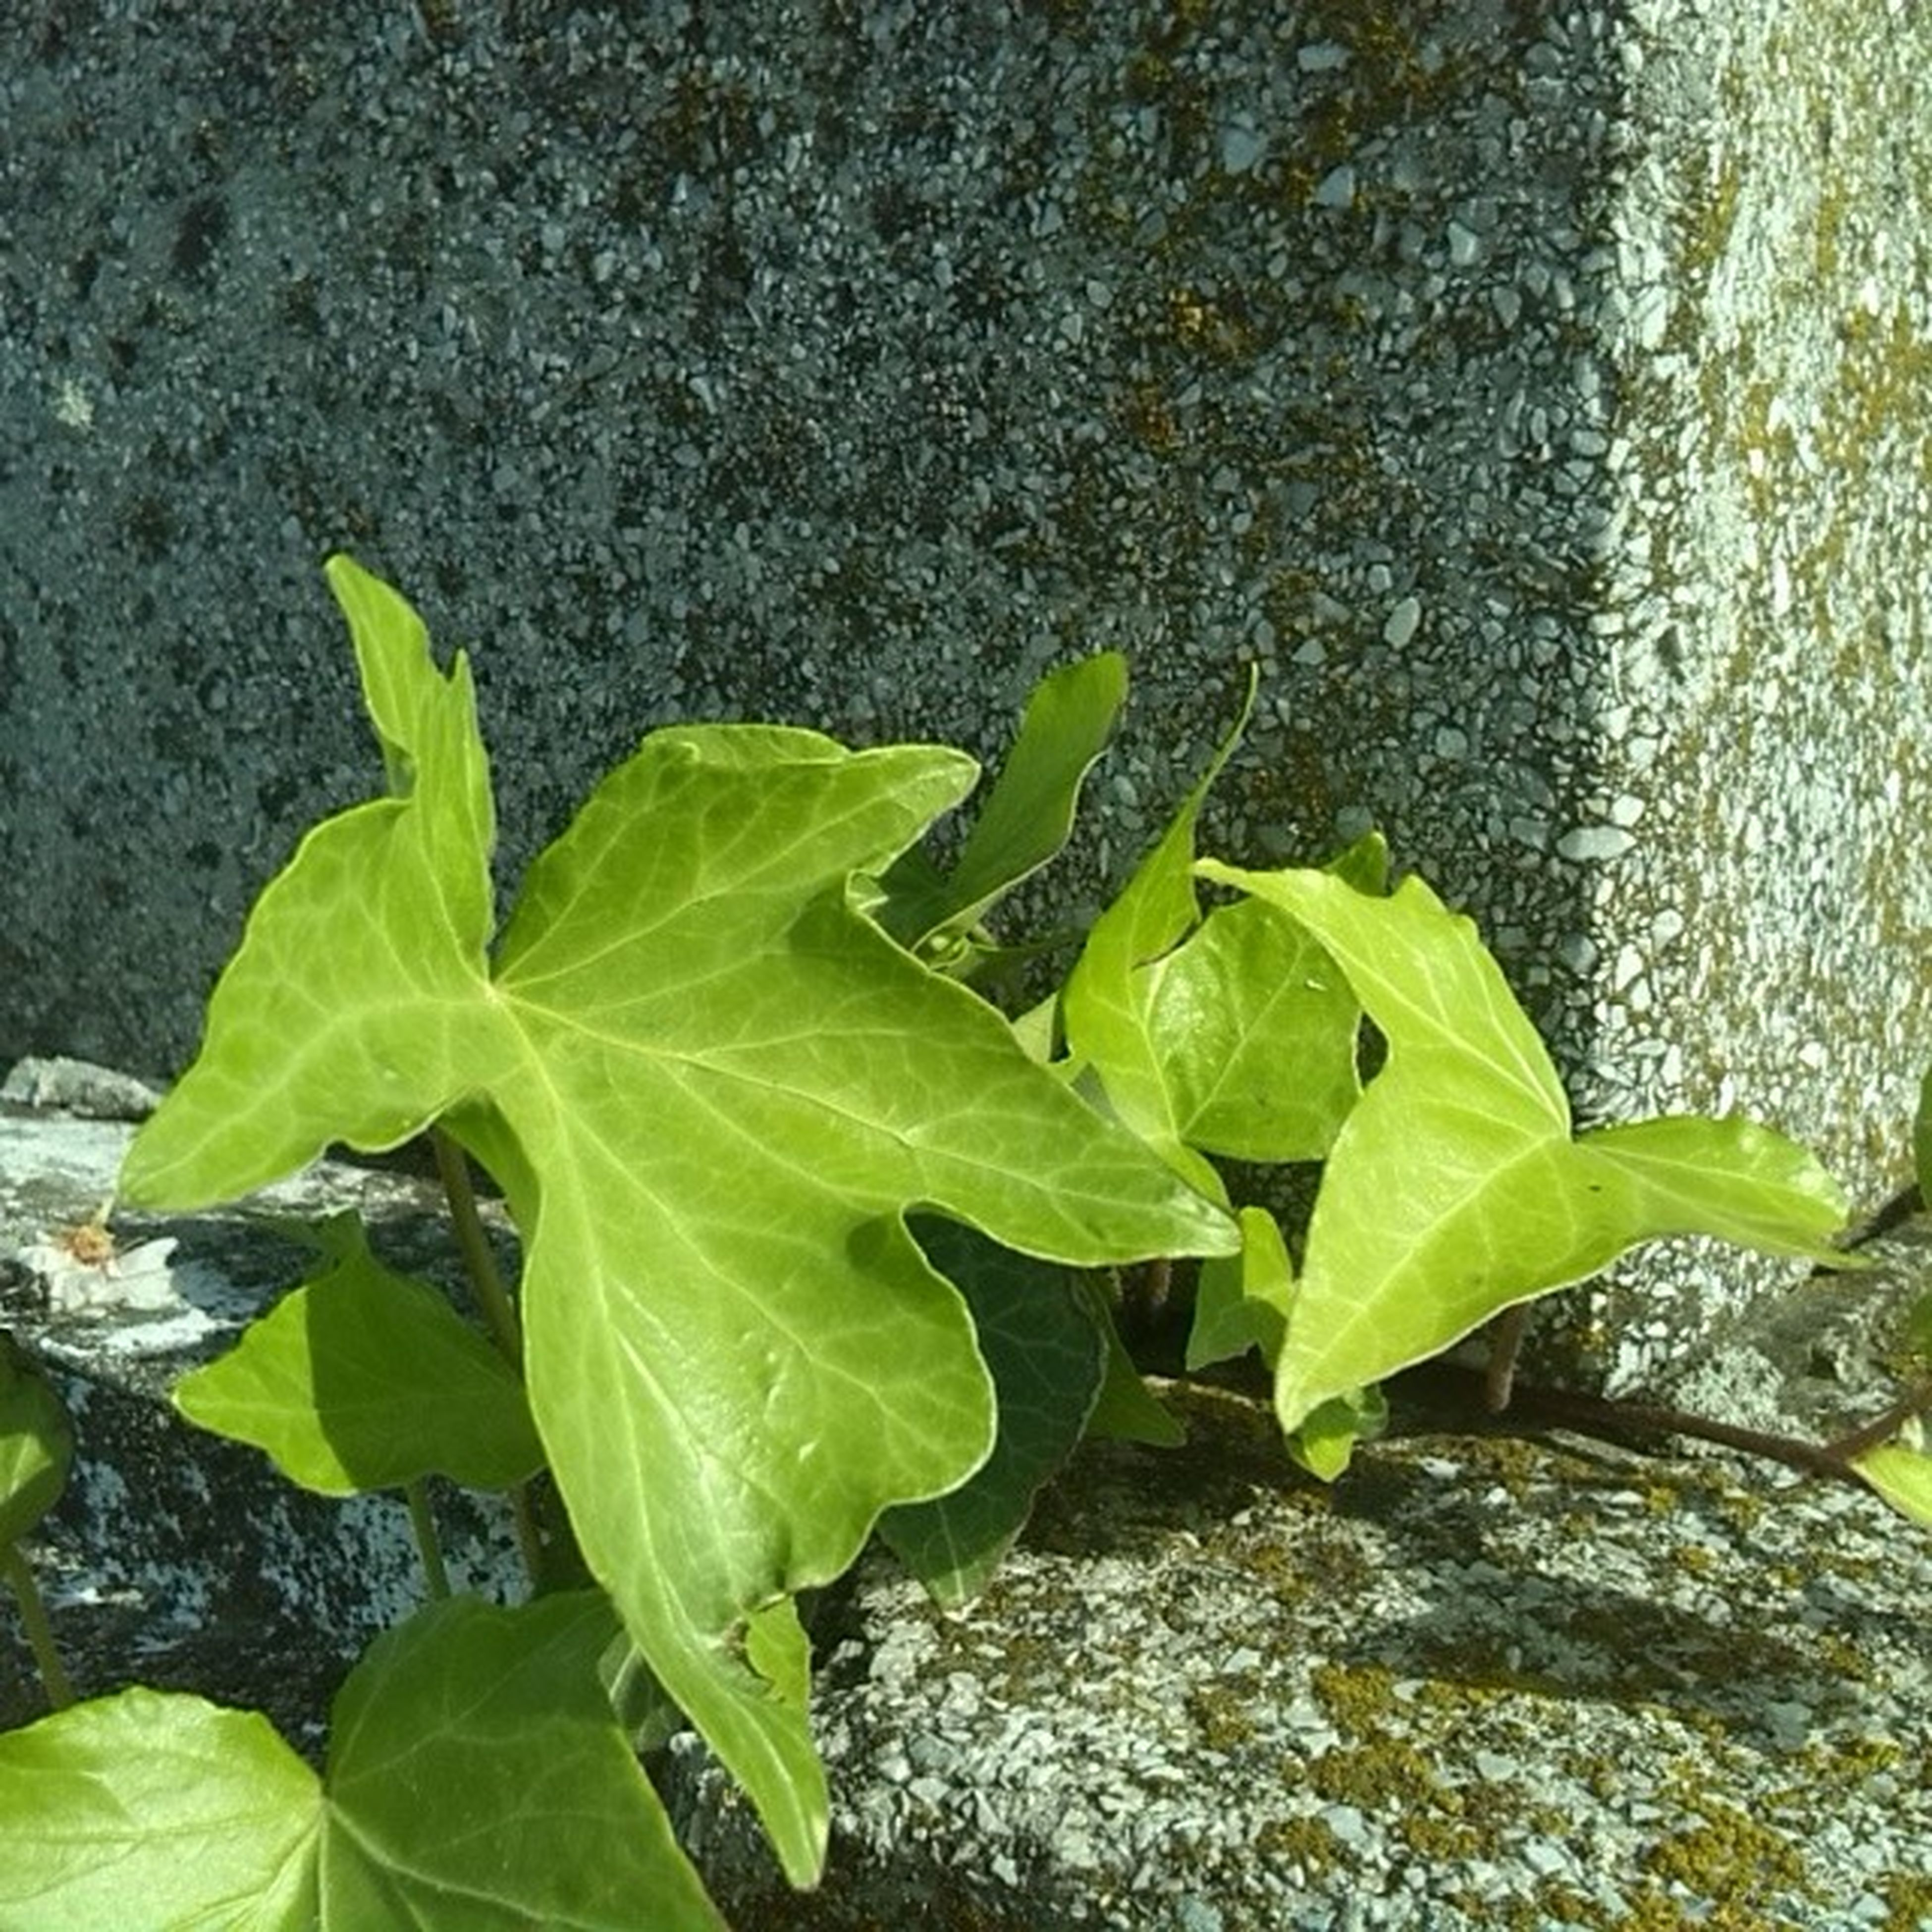 leaf, green color, high angle view, plant, growth, water, nature, close-up, day, outdoors, growing, wet, sunlight, leaves, rock - object, no people, beauty in nature, green, leaf vein, tranquility